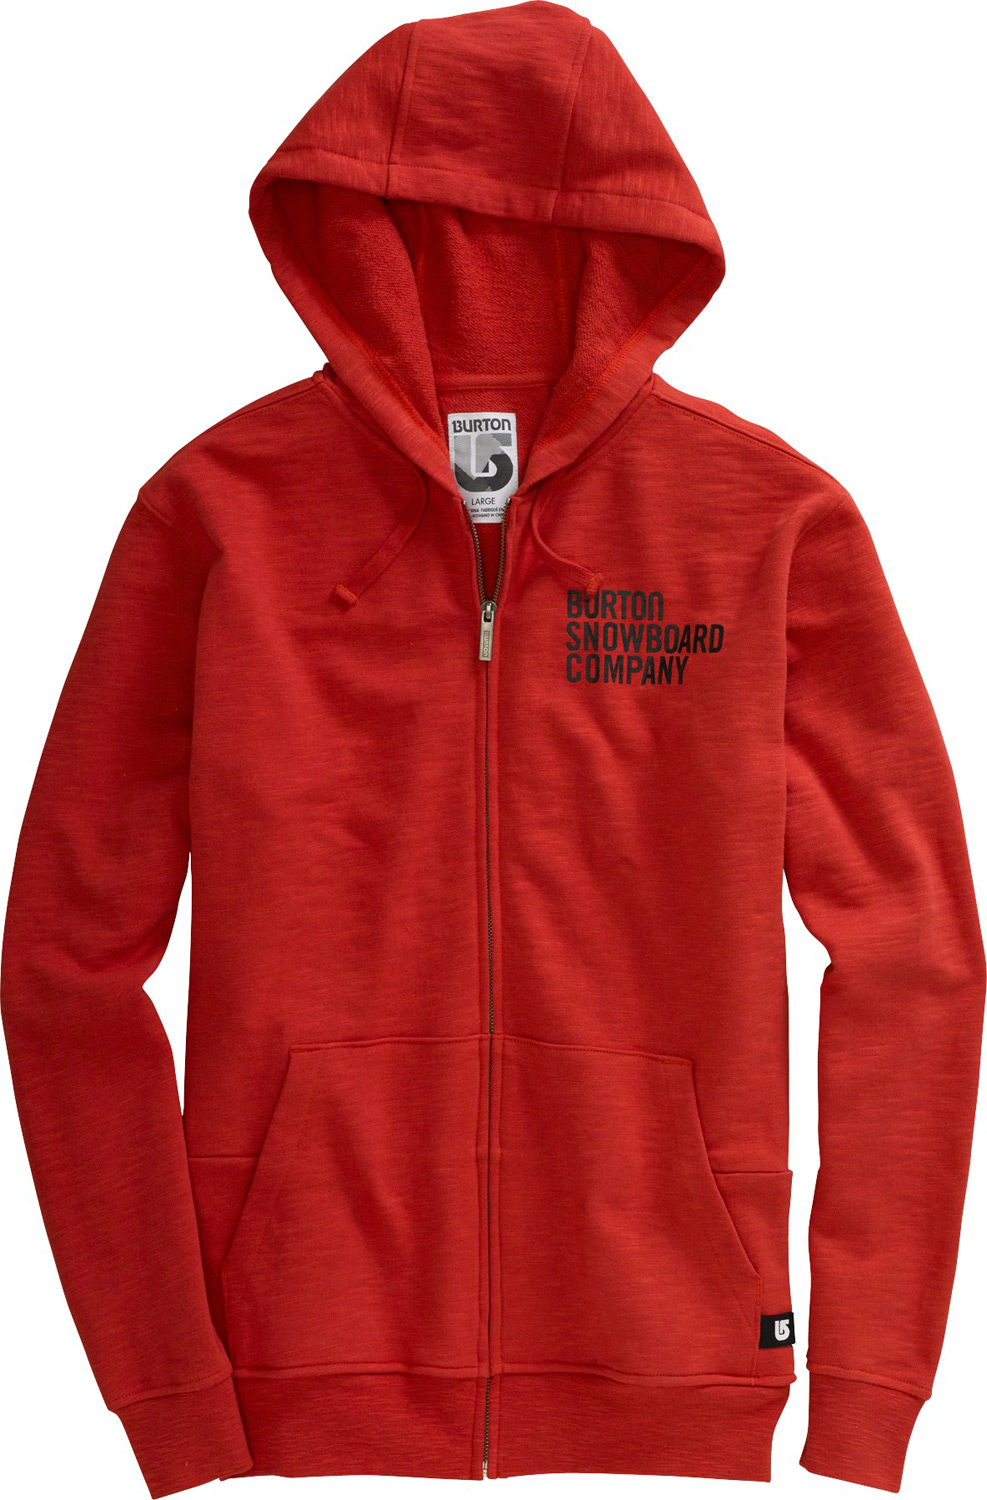 Snowboard Key Features of the Burton Helmet Fullzip Hoodie: 80% Cotton/20% Polyester Custom Zipper Pull and Eyelids Sig Fit - $37.95